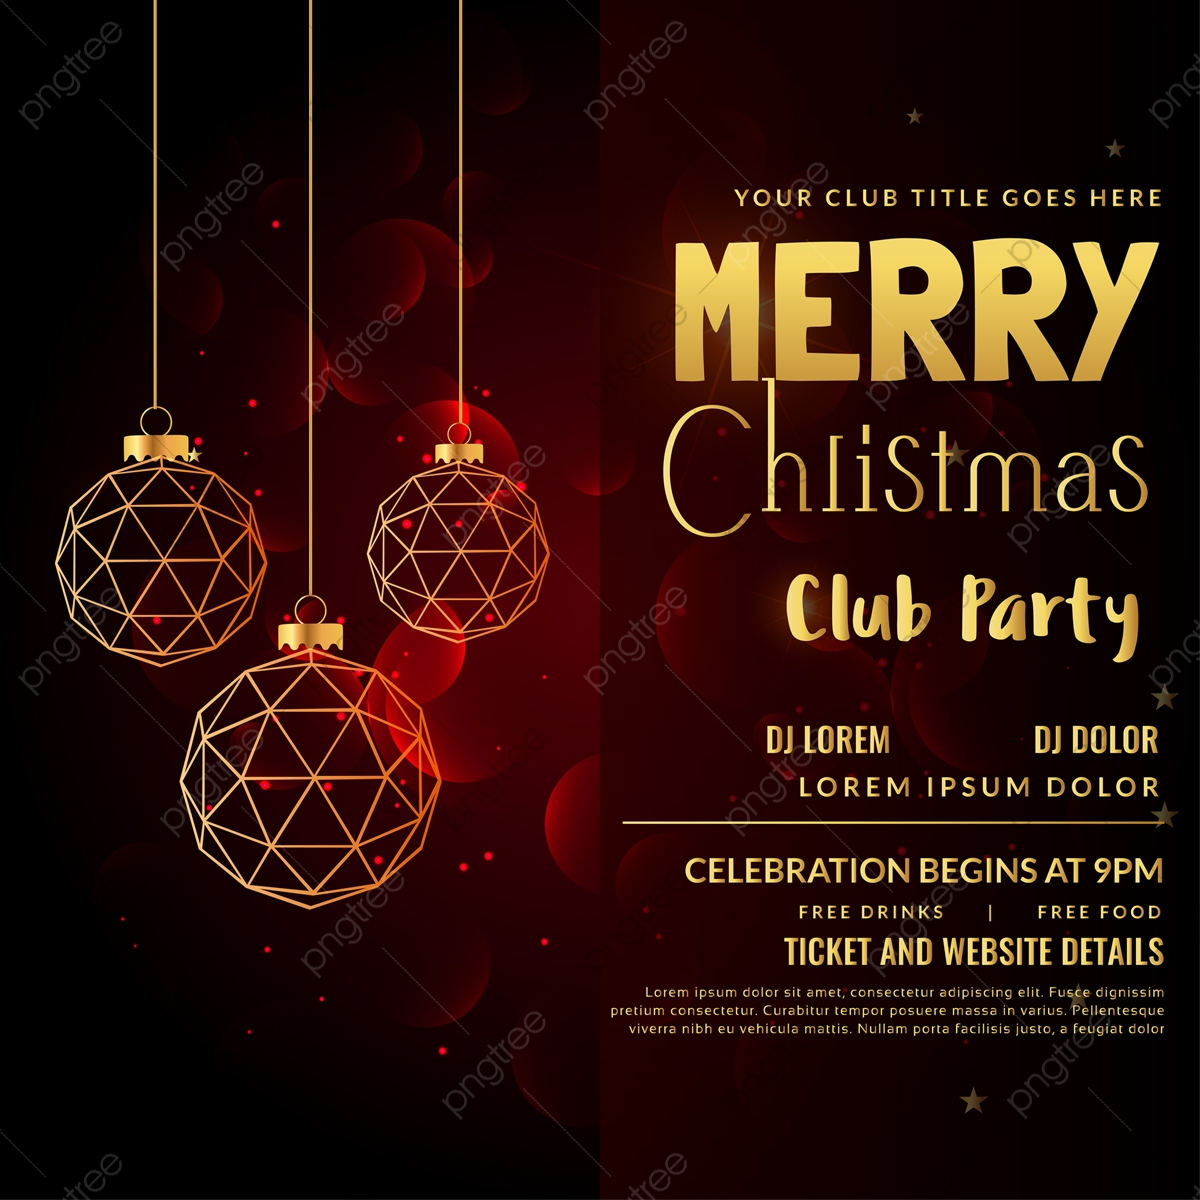 Christmas Party Poster Christmas Party Blue Christmas Christmas Png And Vector With Transparent Background For Free Download